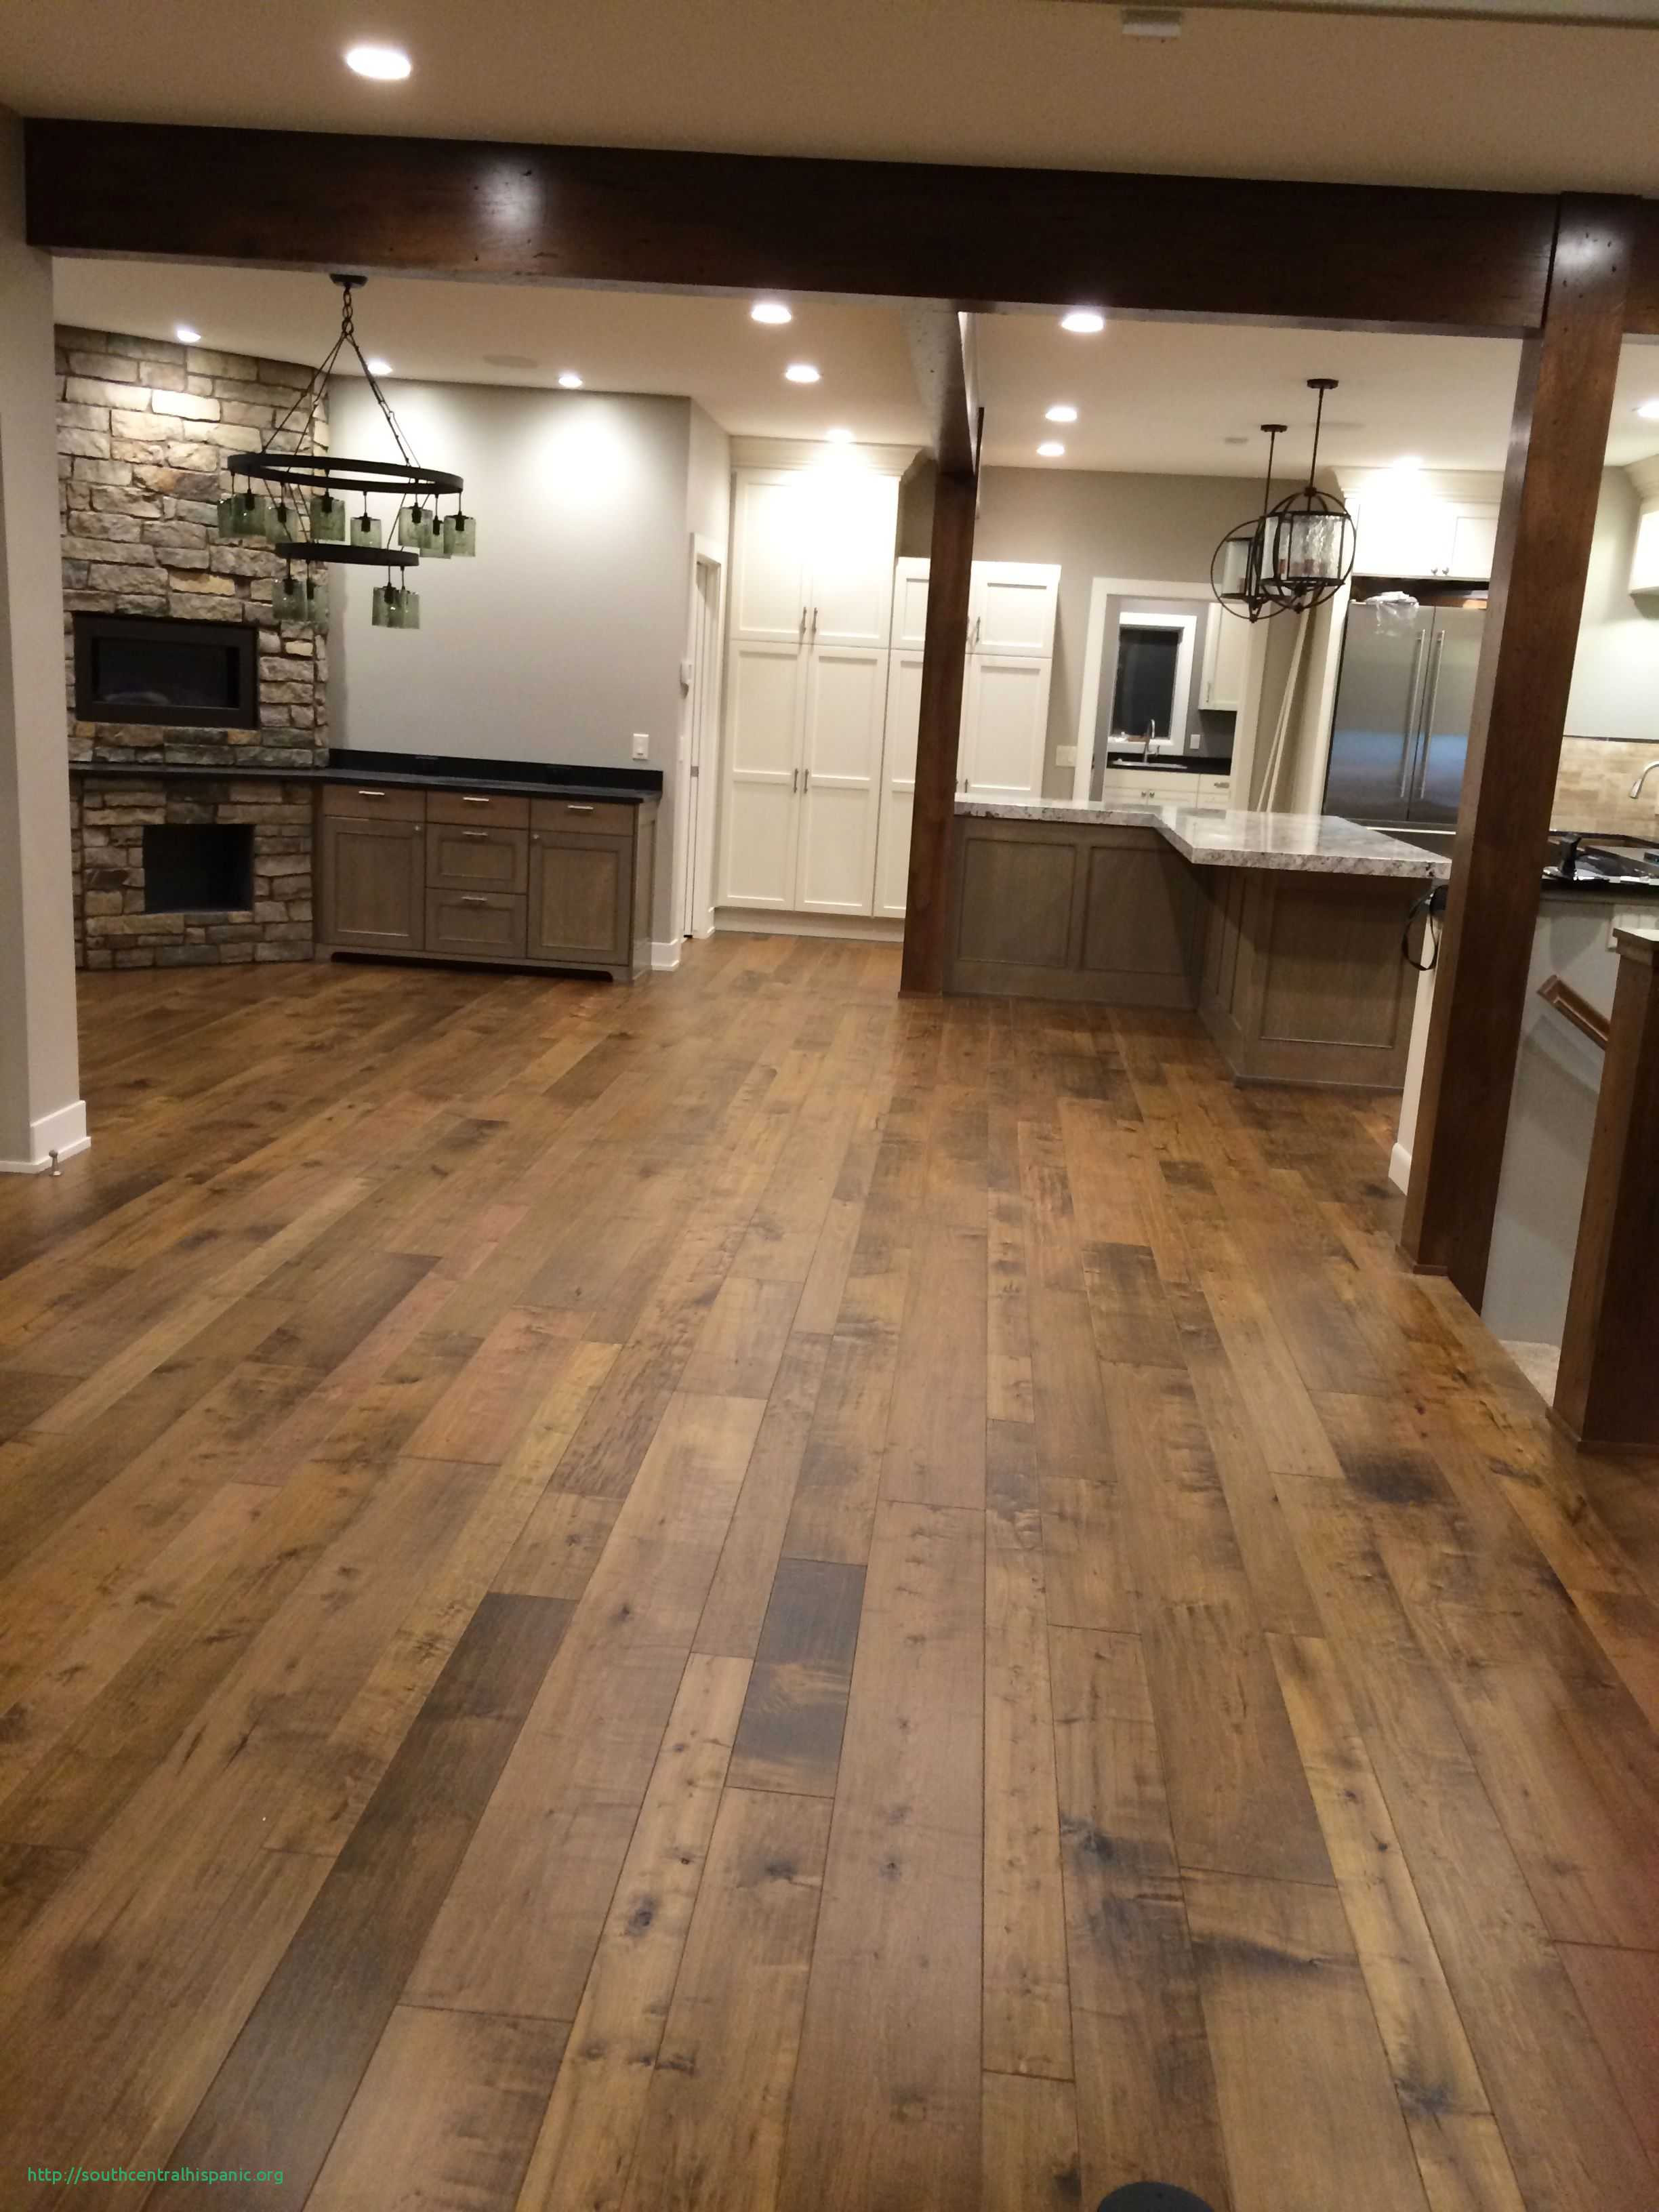 14 Fabulous Hardwood Flooring Engineered Vs solid Cost 2021 free download hardwood flooring engineered vs solid cost of best engineered hardwood floors 24 unique best price engineered in best engineered hardwood floors 24 unique best price engineered hardwood floo